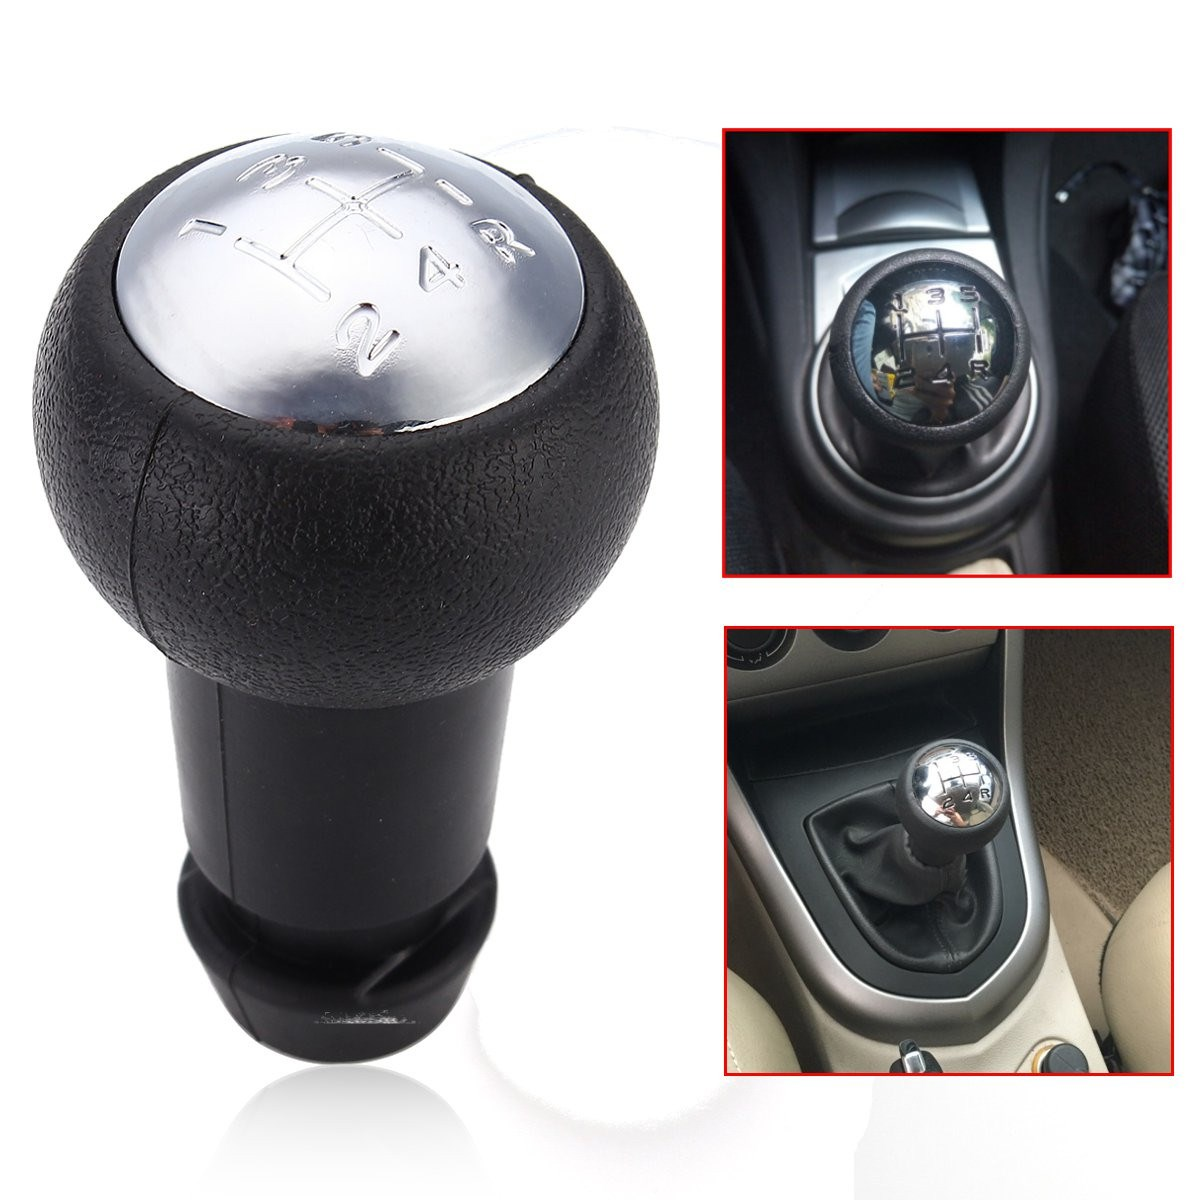 5 Speed Gear Shift Knob For Peugeot 307 106 for Citroen/Saxo/Xsara C2 C3 C4 for Berlingo Black and Chrome idle air control valve for citroen berlingo saxo for peugeot 106 306 partner seat ibiza for vw golf polo 19203r 19205z 032133031